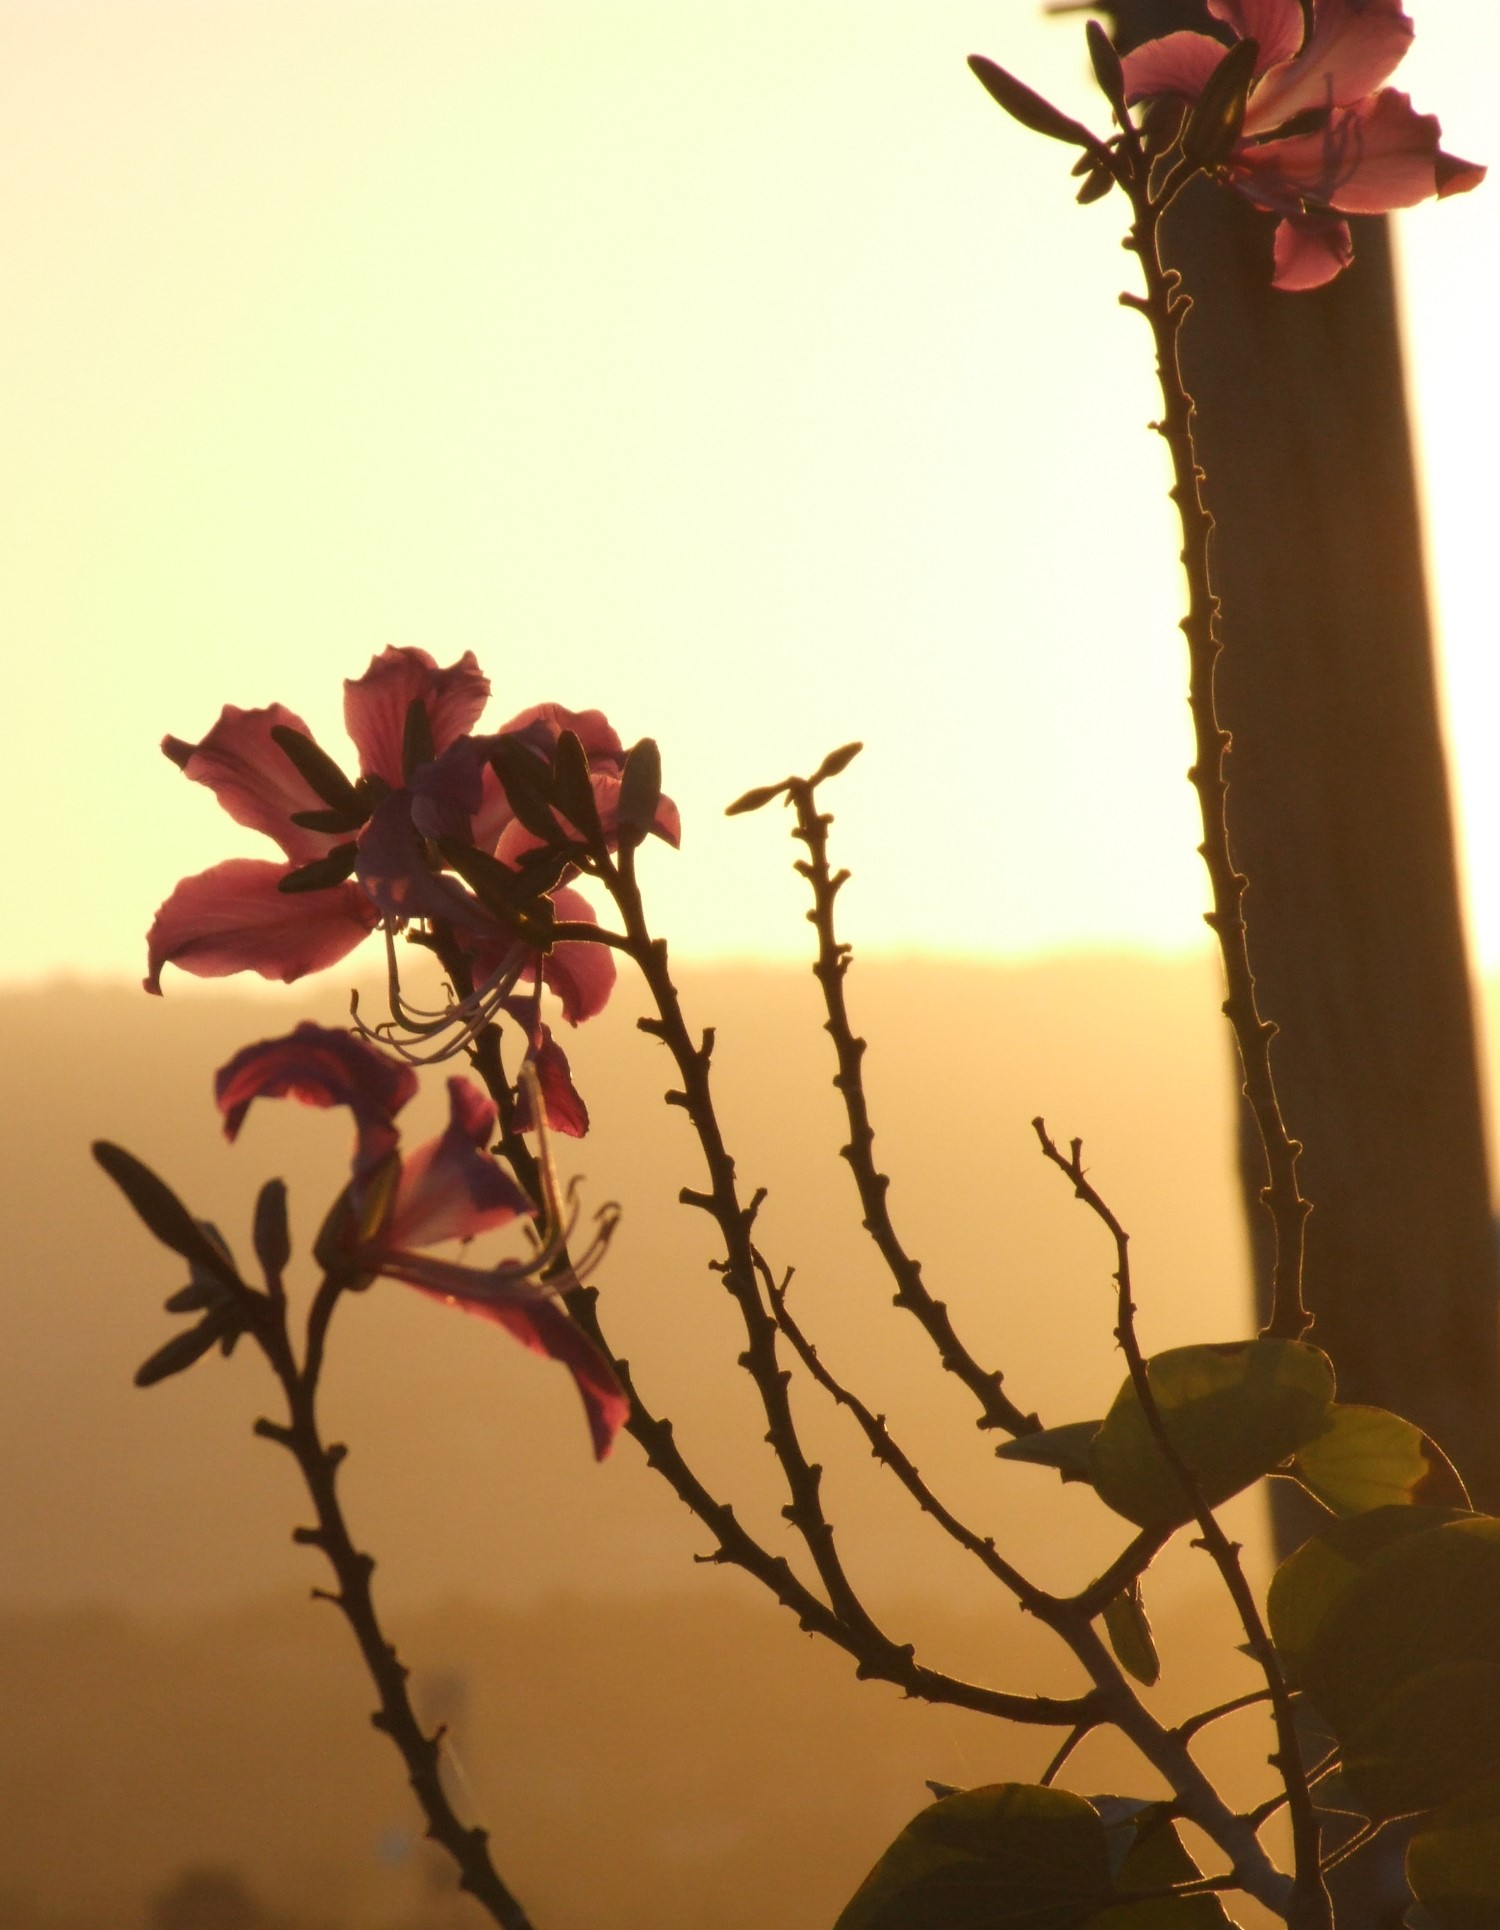 Misty sunset with flowers in foreground